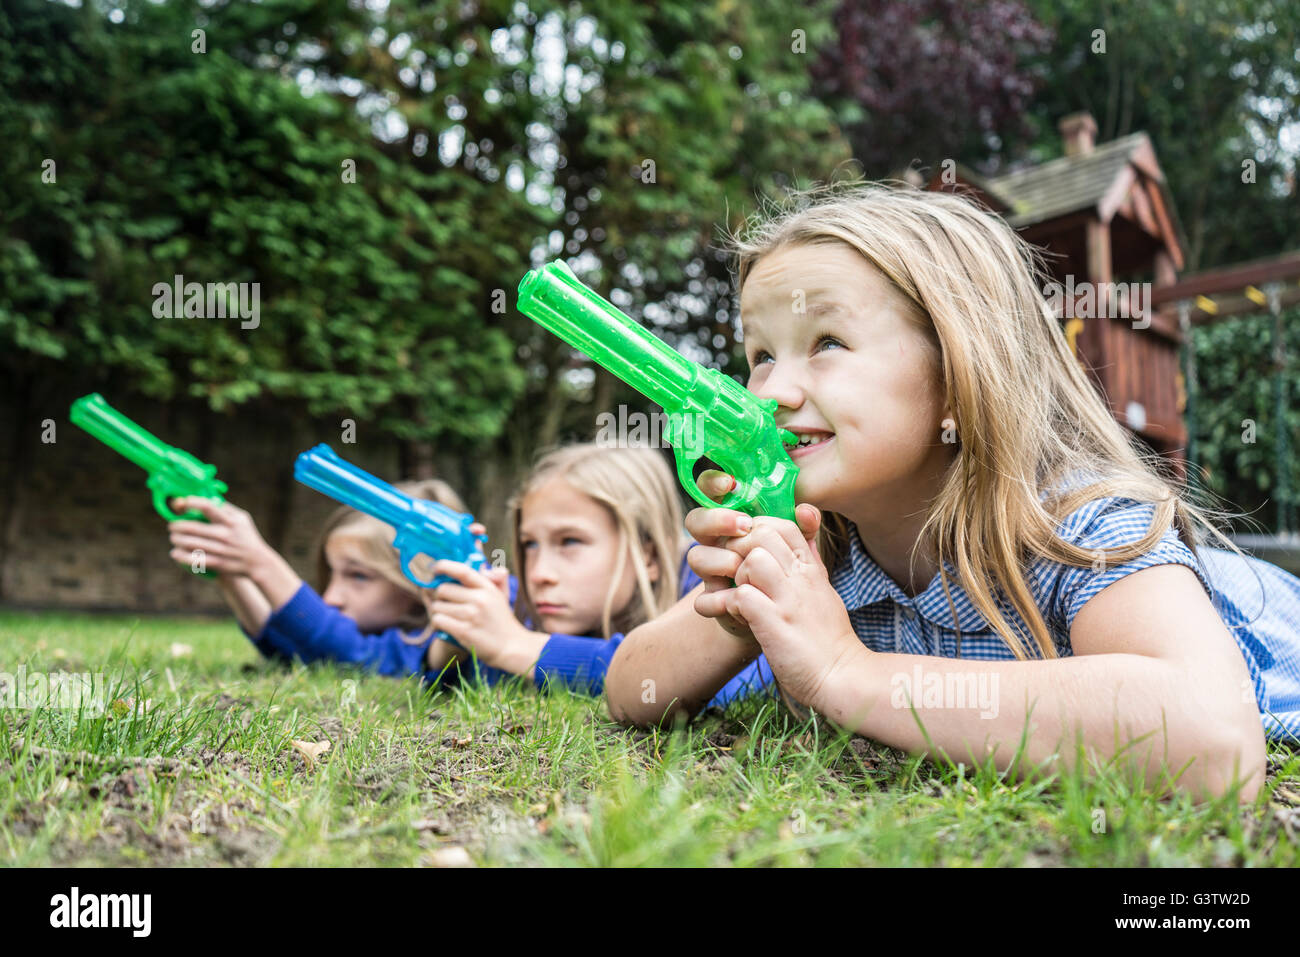 Three ten year old girls in school uniform holding water pistols. - Stock Image